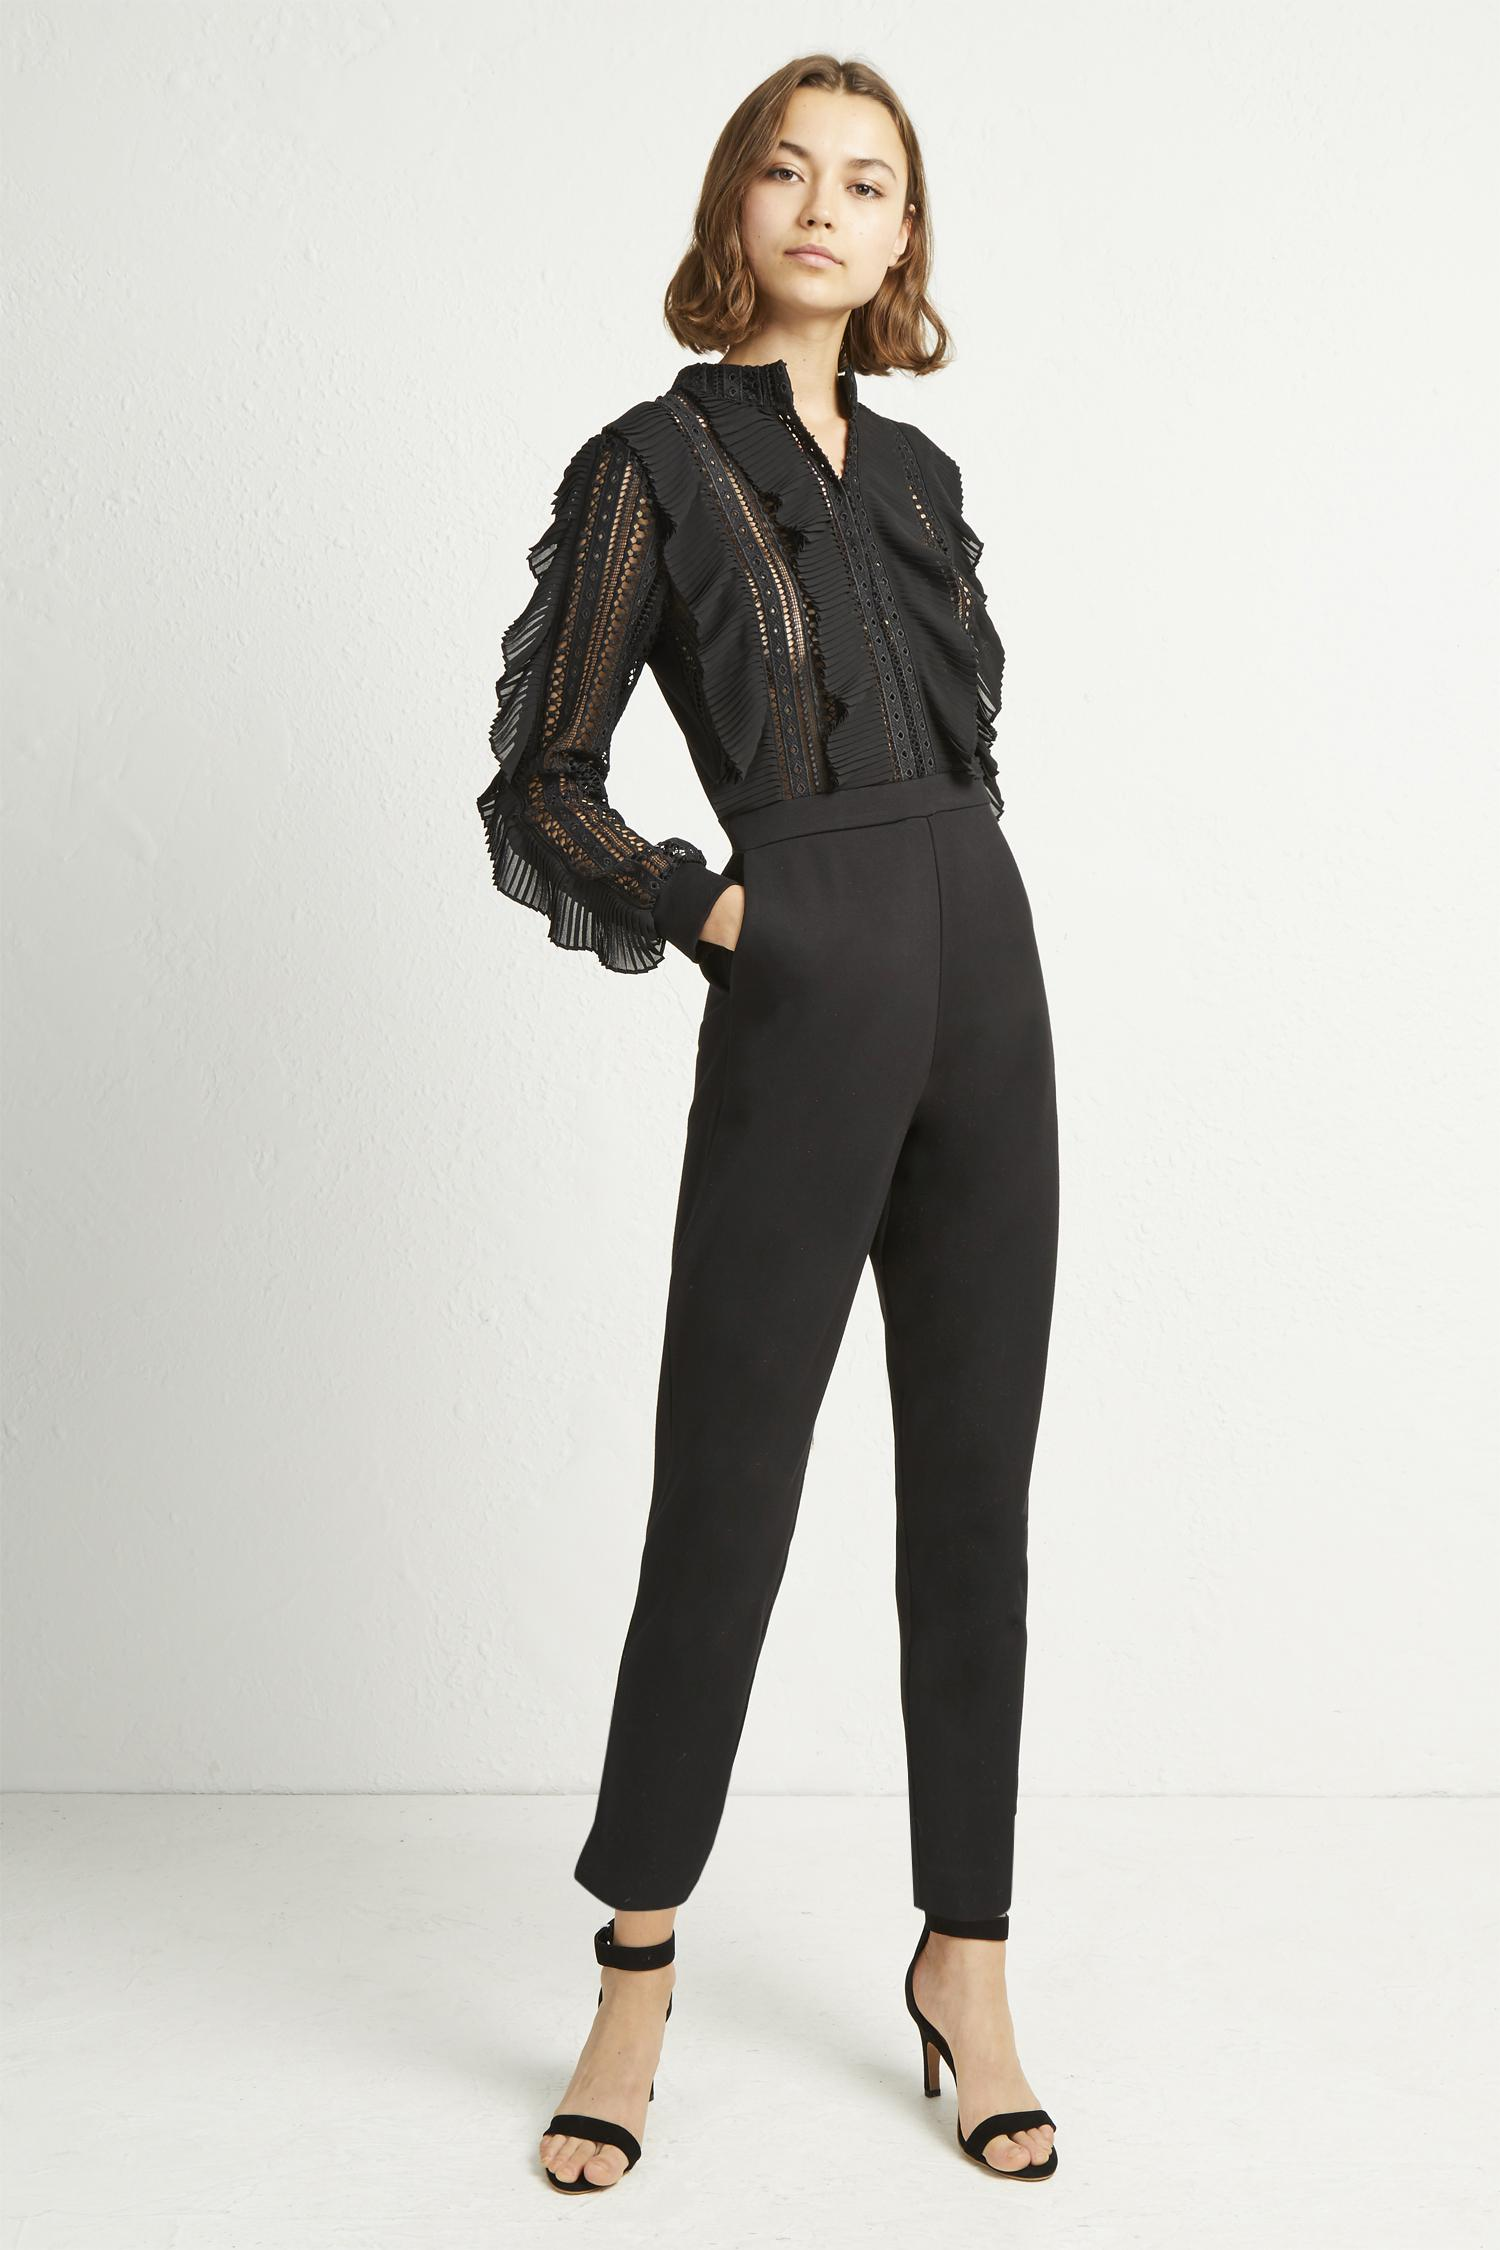 5a4a9909489 French Connection Patricia Lace Jersey Jumpsuit in Black - Lyst